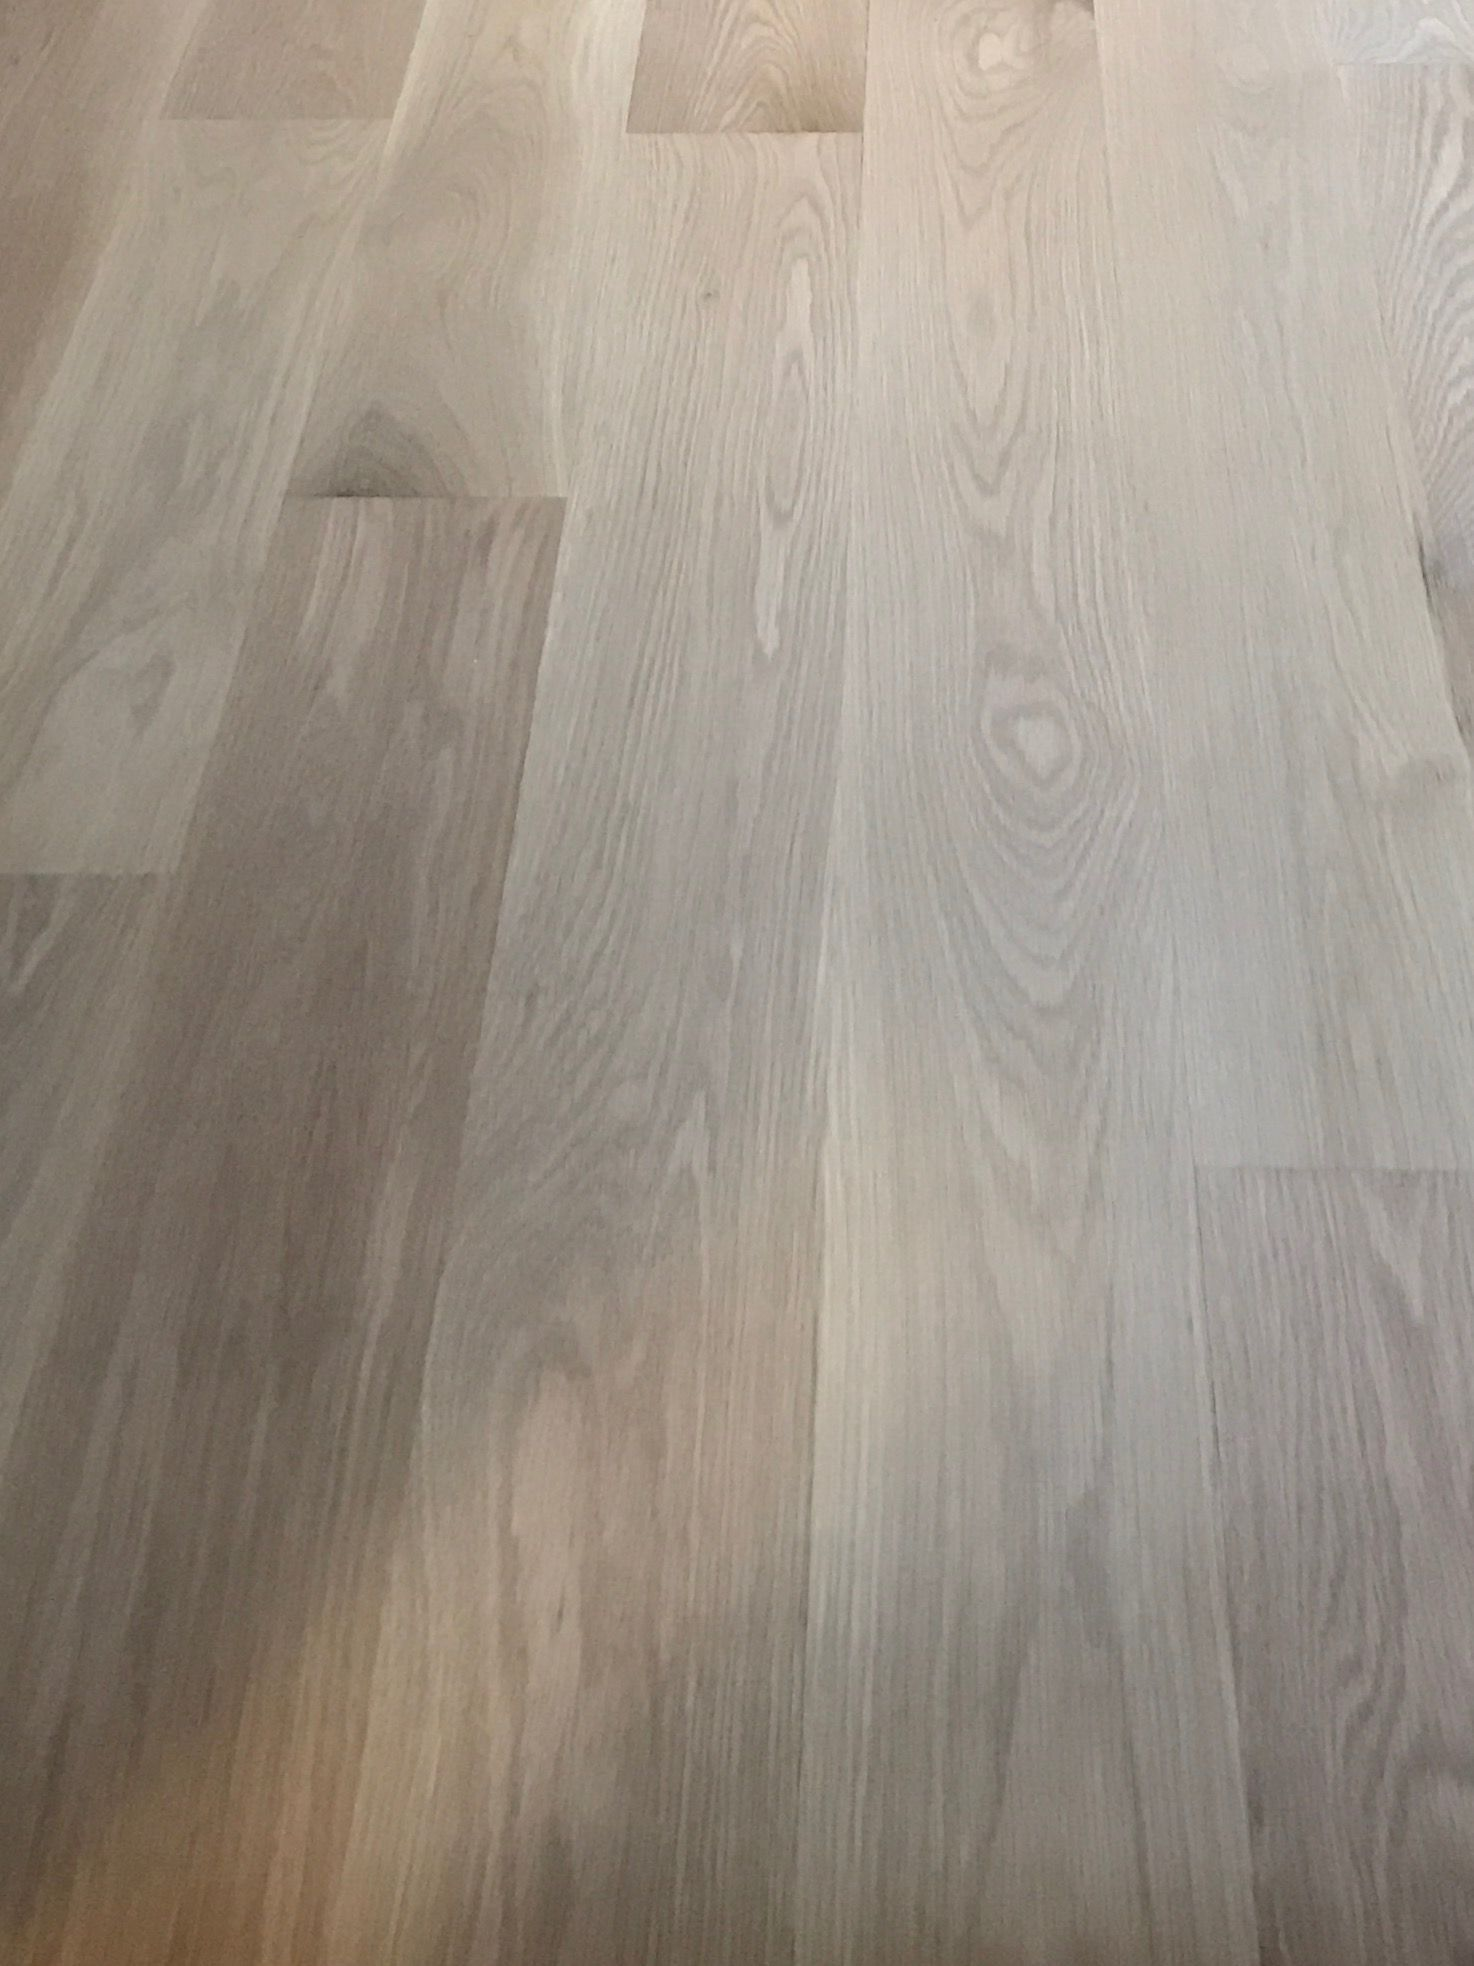 White Oak Floors With Pickled Wash On Wiped Off Then Ultra Matte Bona Hd Flooring Wood Floor Design White Oak Hardwood Floors